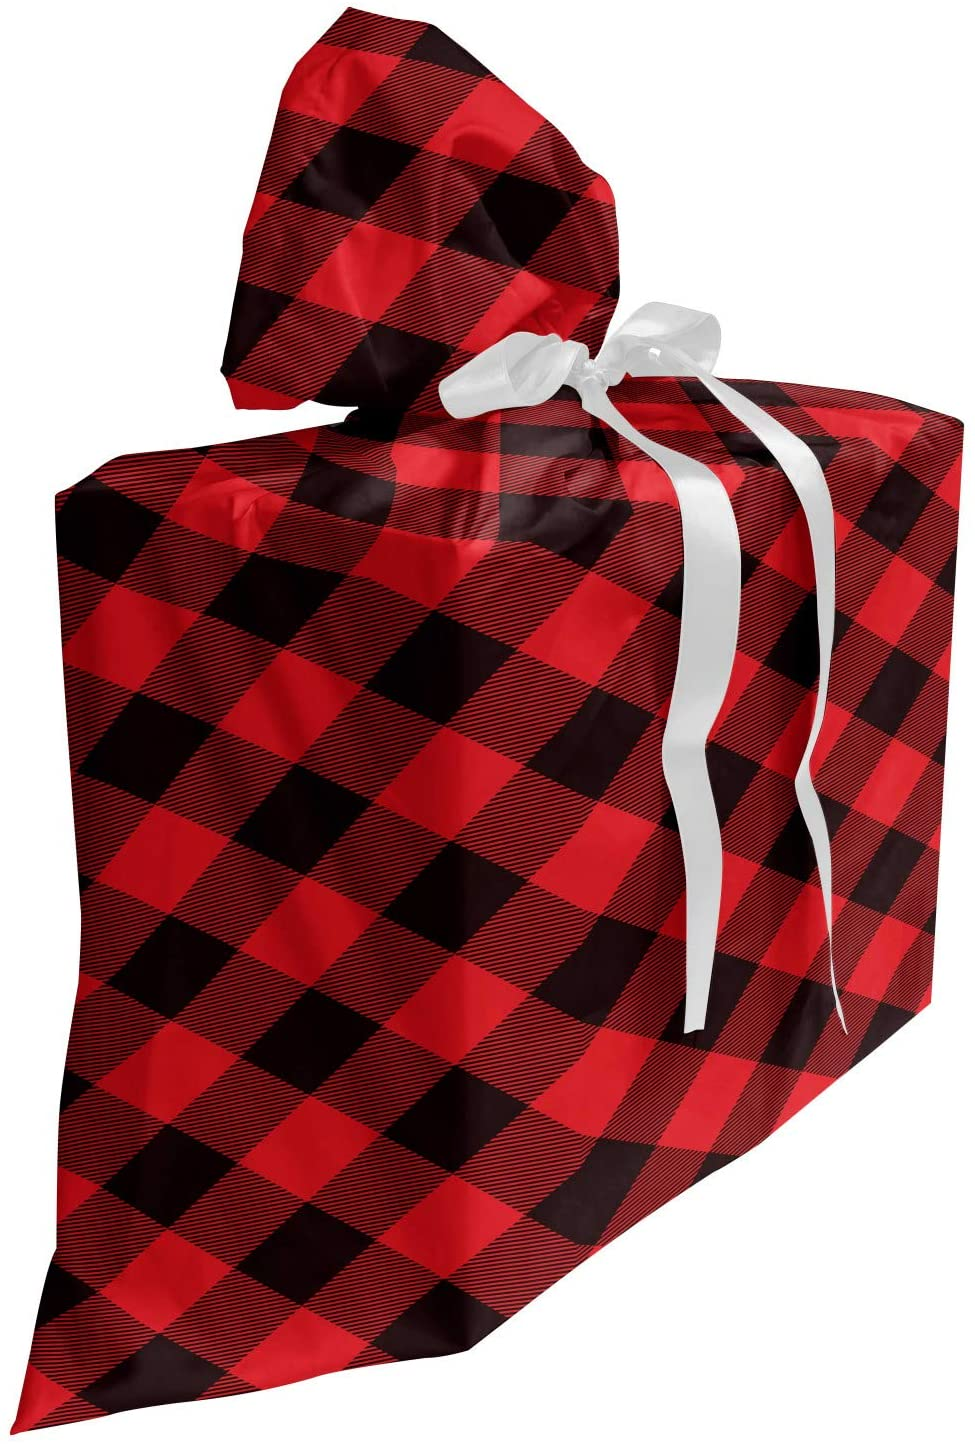 Lunarable Buffalo Plaid Baby Shower Gift Bag, Grid Style Illustration with Horizontal Lines Pattern Diamond, Reusable Fabric Party Favor Pouch with 3 Ribbons, 27